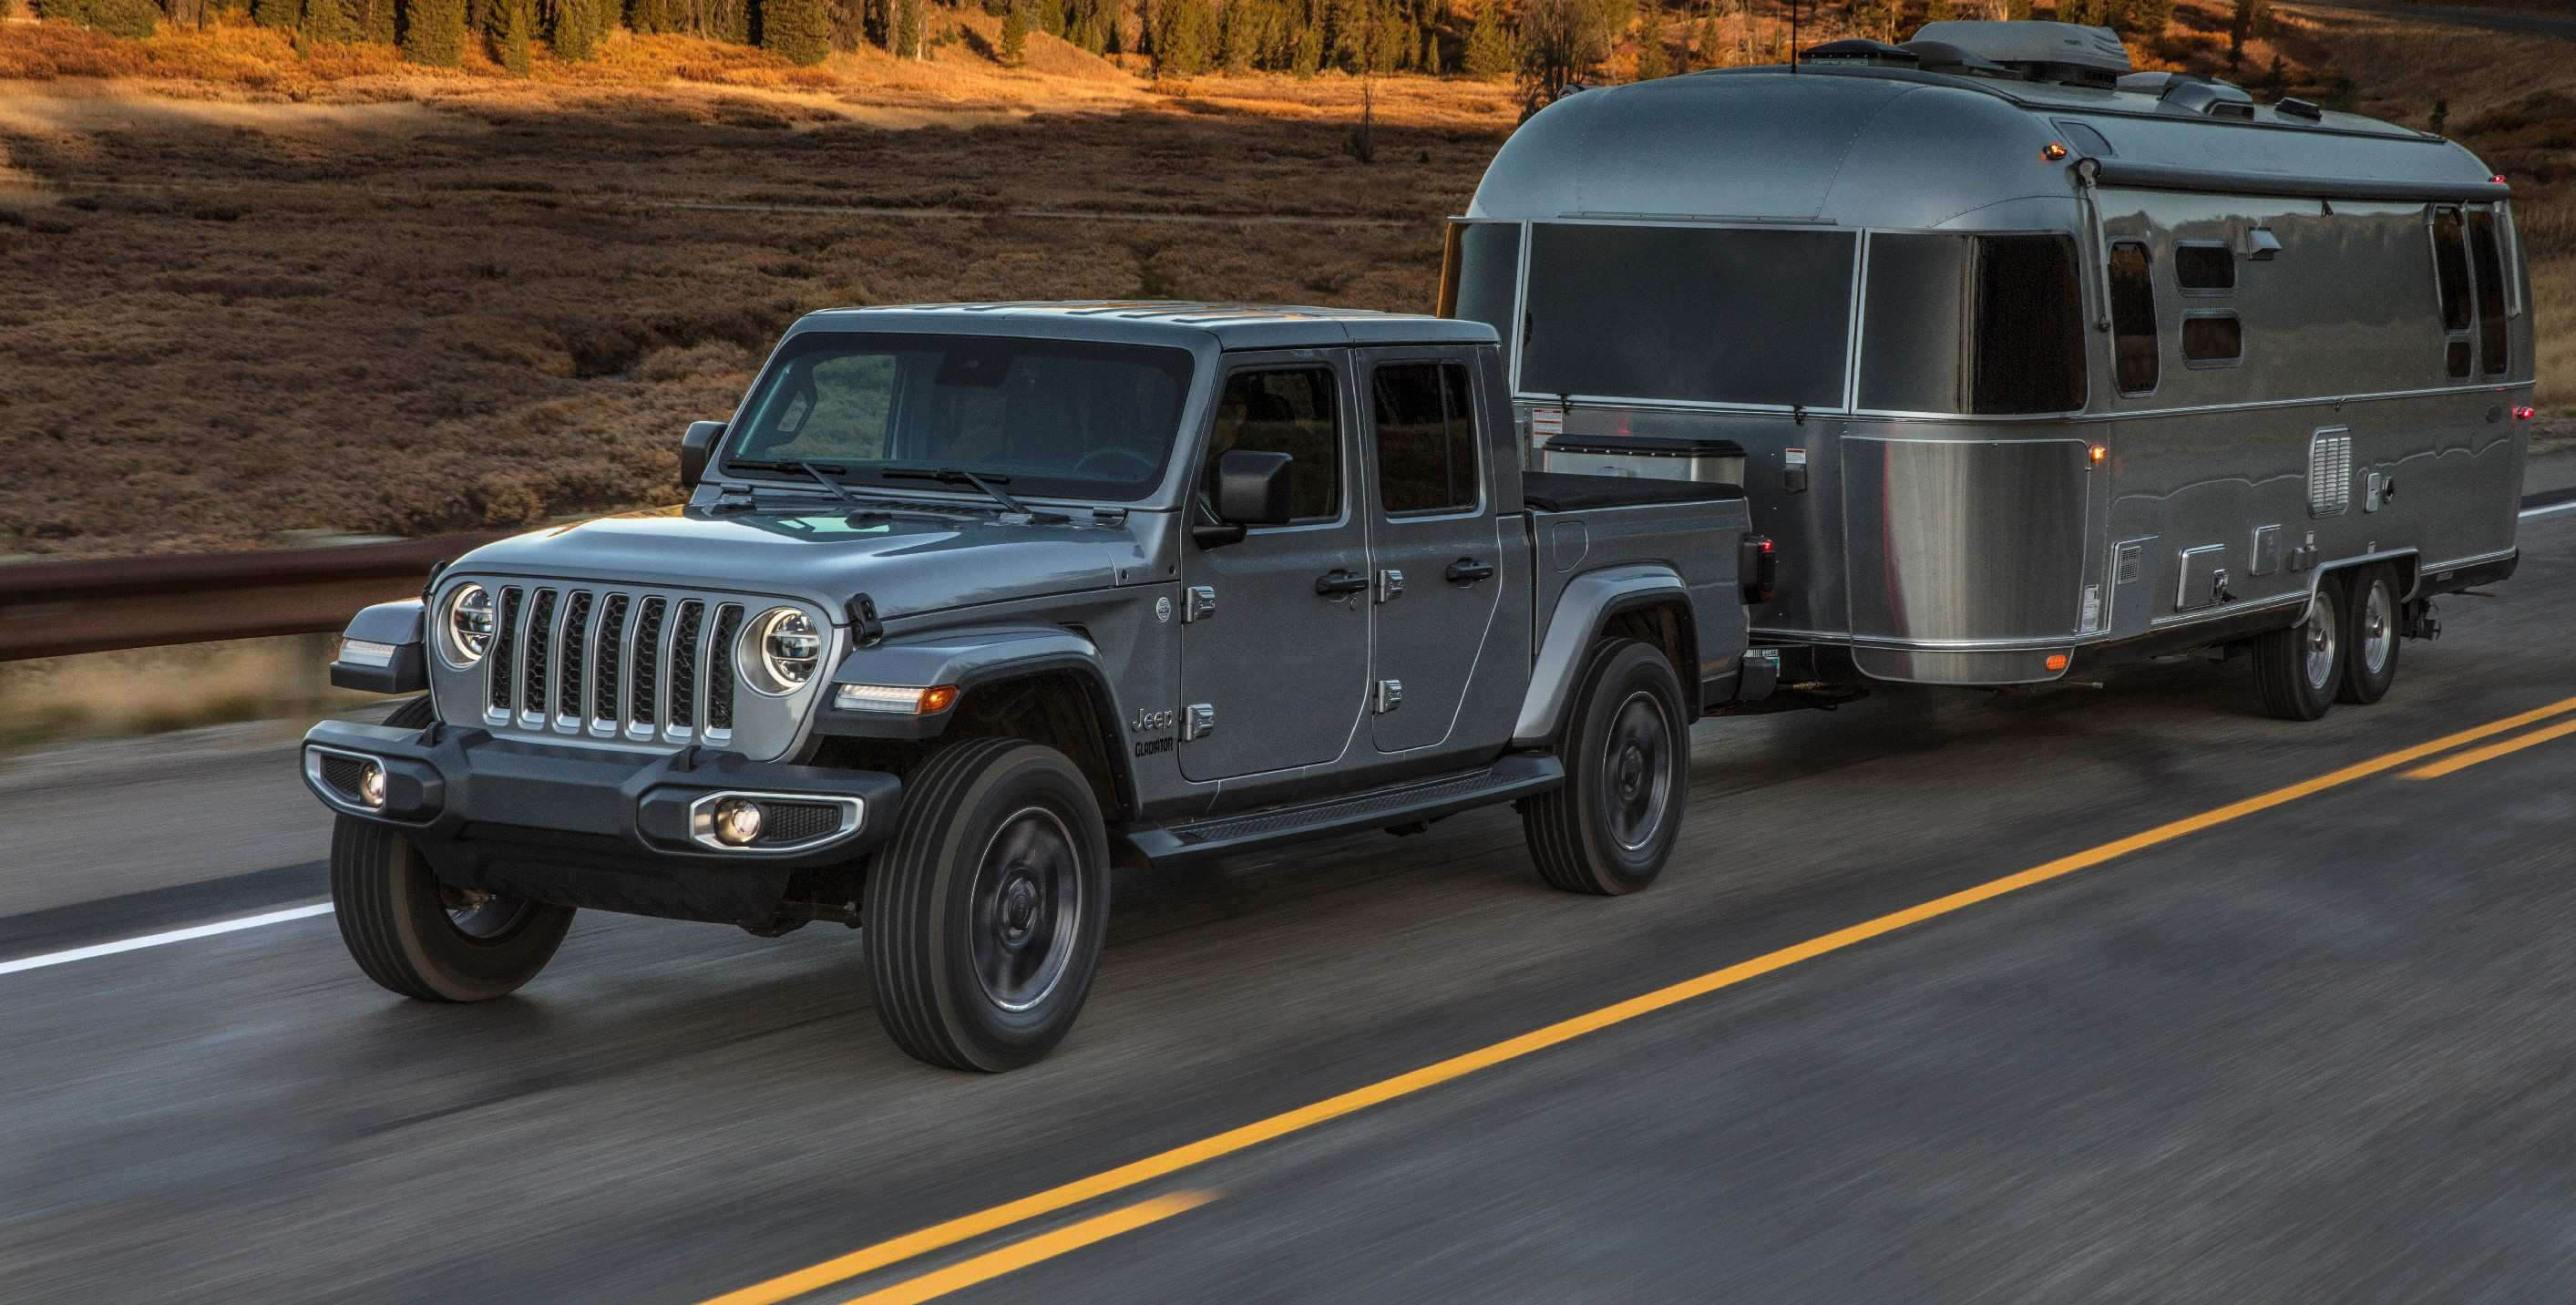 17 The Best 2020 Jeep Gladiator Color Options Exterior And Interior